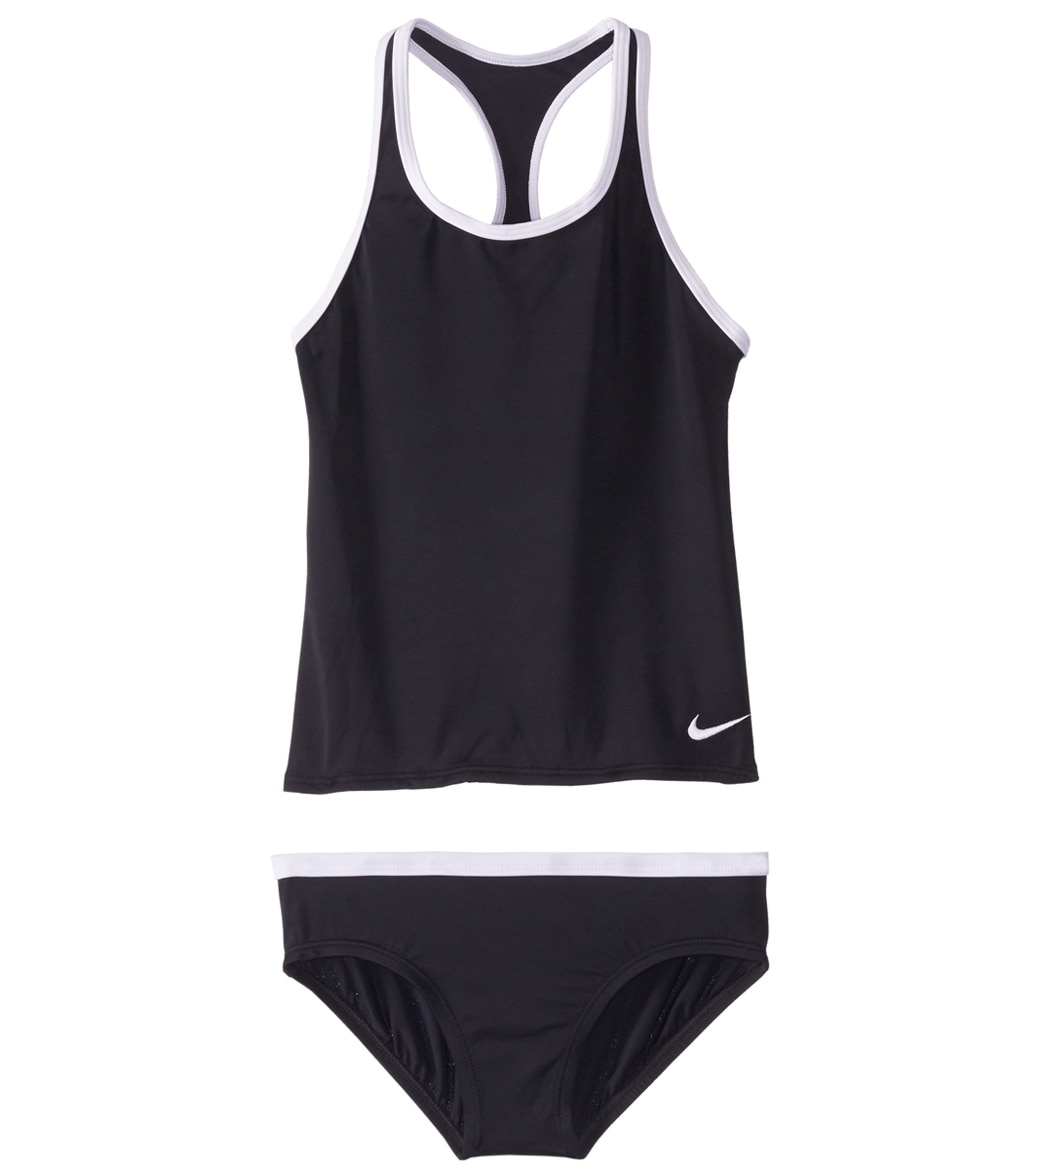 8391a15696600 Girls' Nike Core Solid Racerback Two Piece Tankini Set (Big Kid) at  SwimOutlet.com